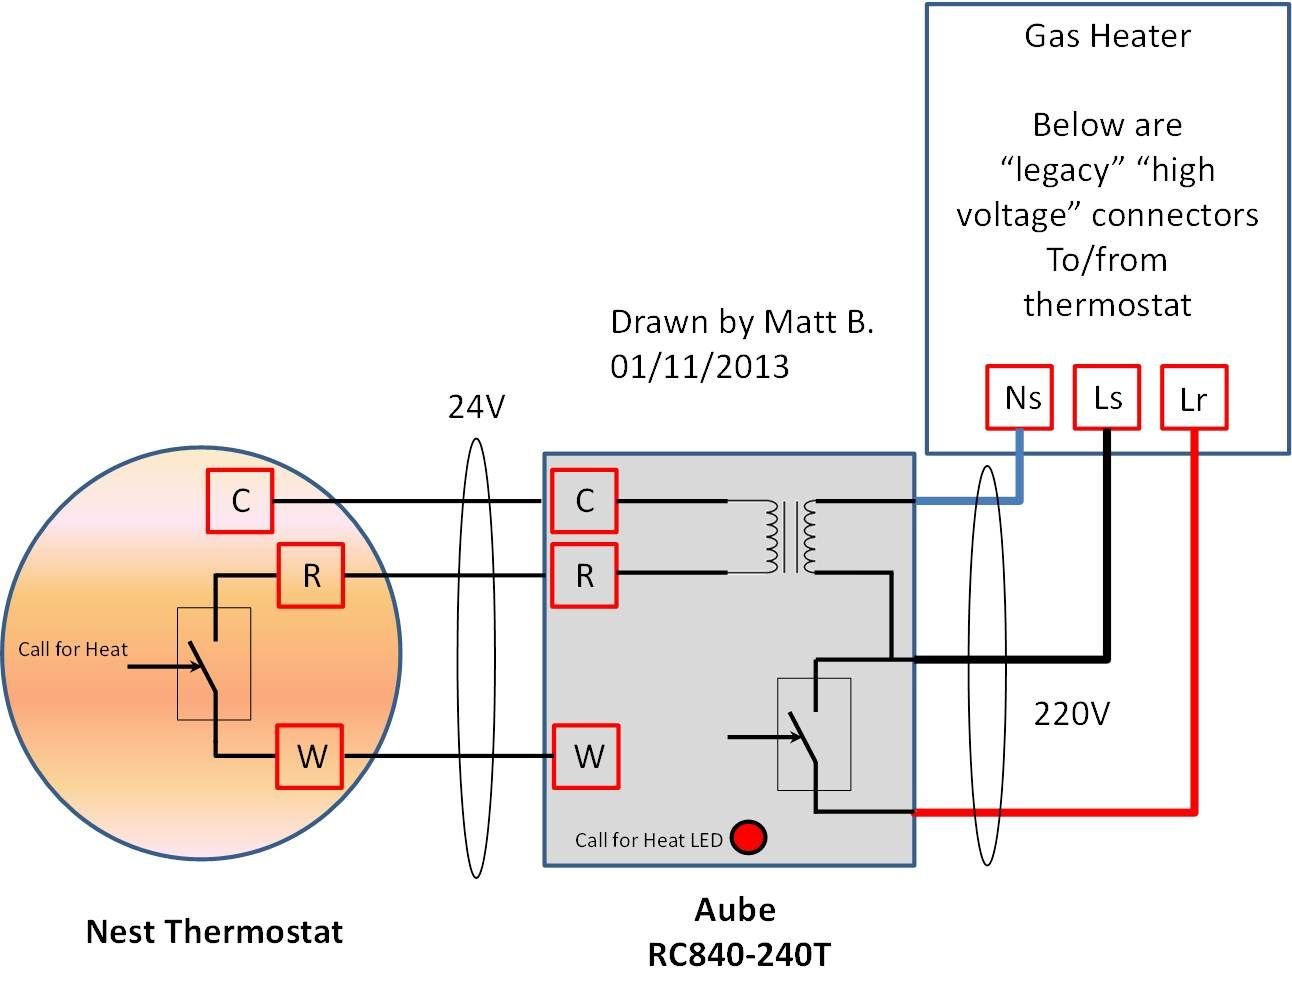 High Voltage Nest Thermostat Wiring On A 220v 2240v In Europe French House Diagram France